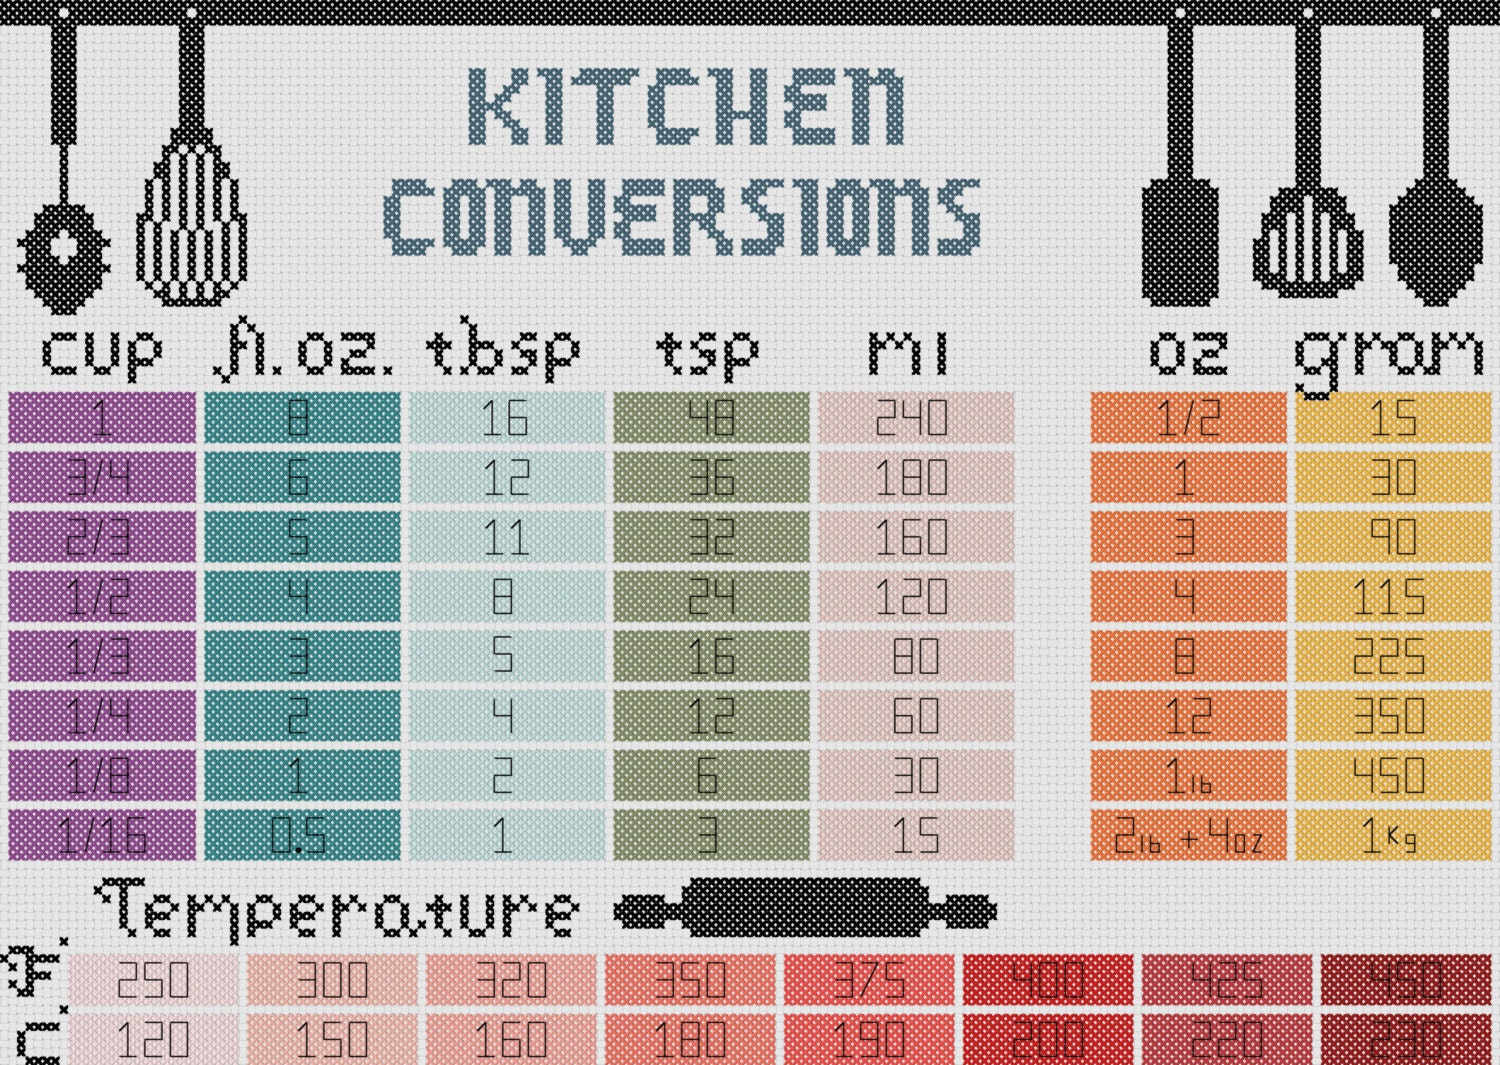 Kitchen cross stitch pattern measurement conversion chart pdf this is a digital file nvjuhfo Gallery